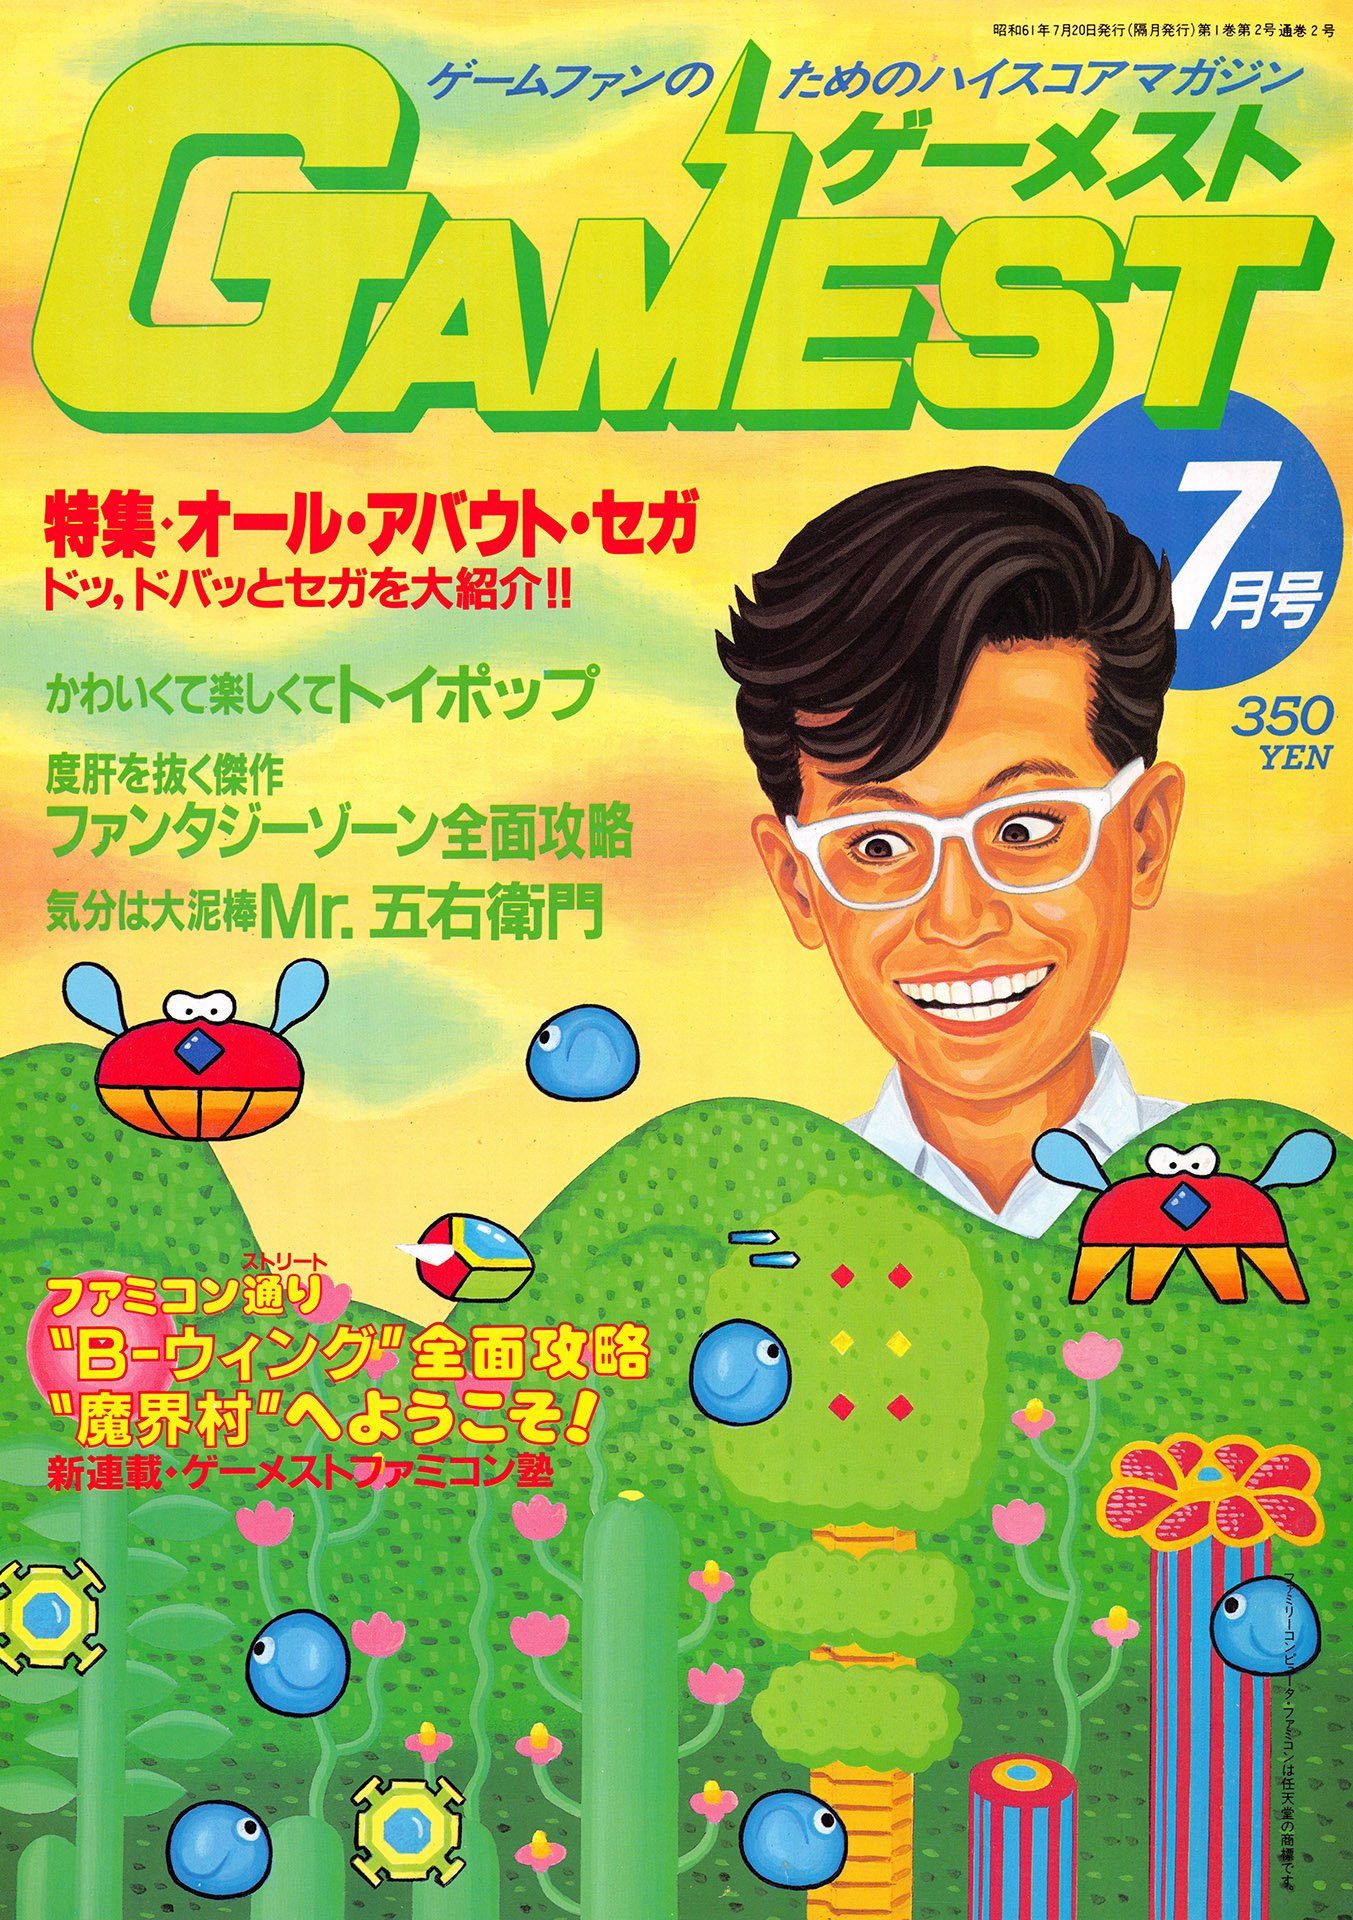 Gamest Issue 001 (July 1986)